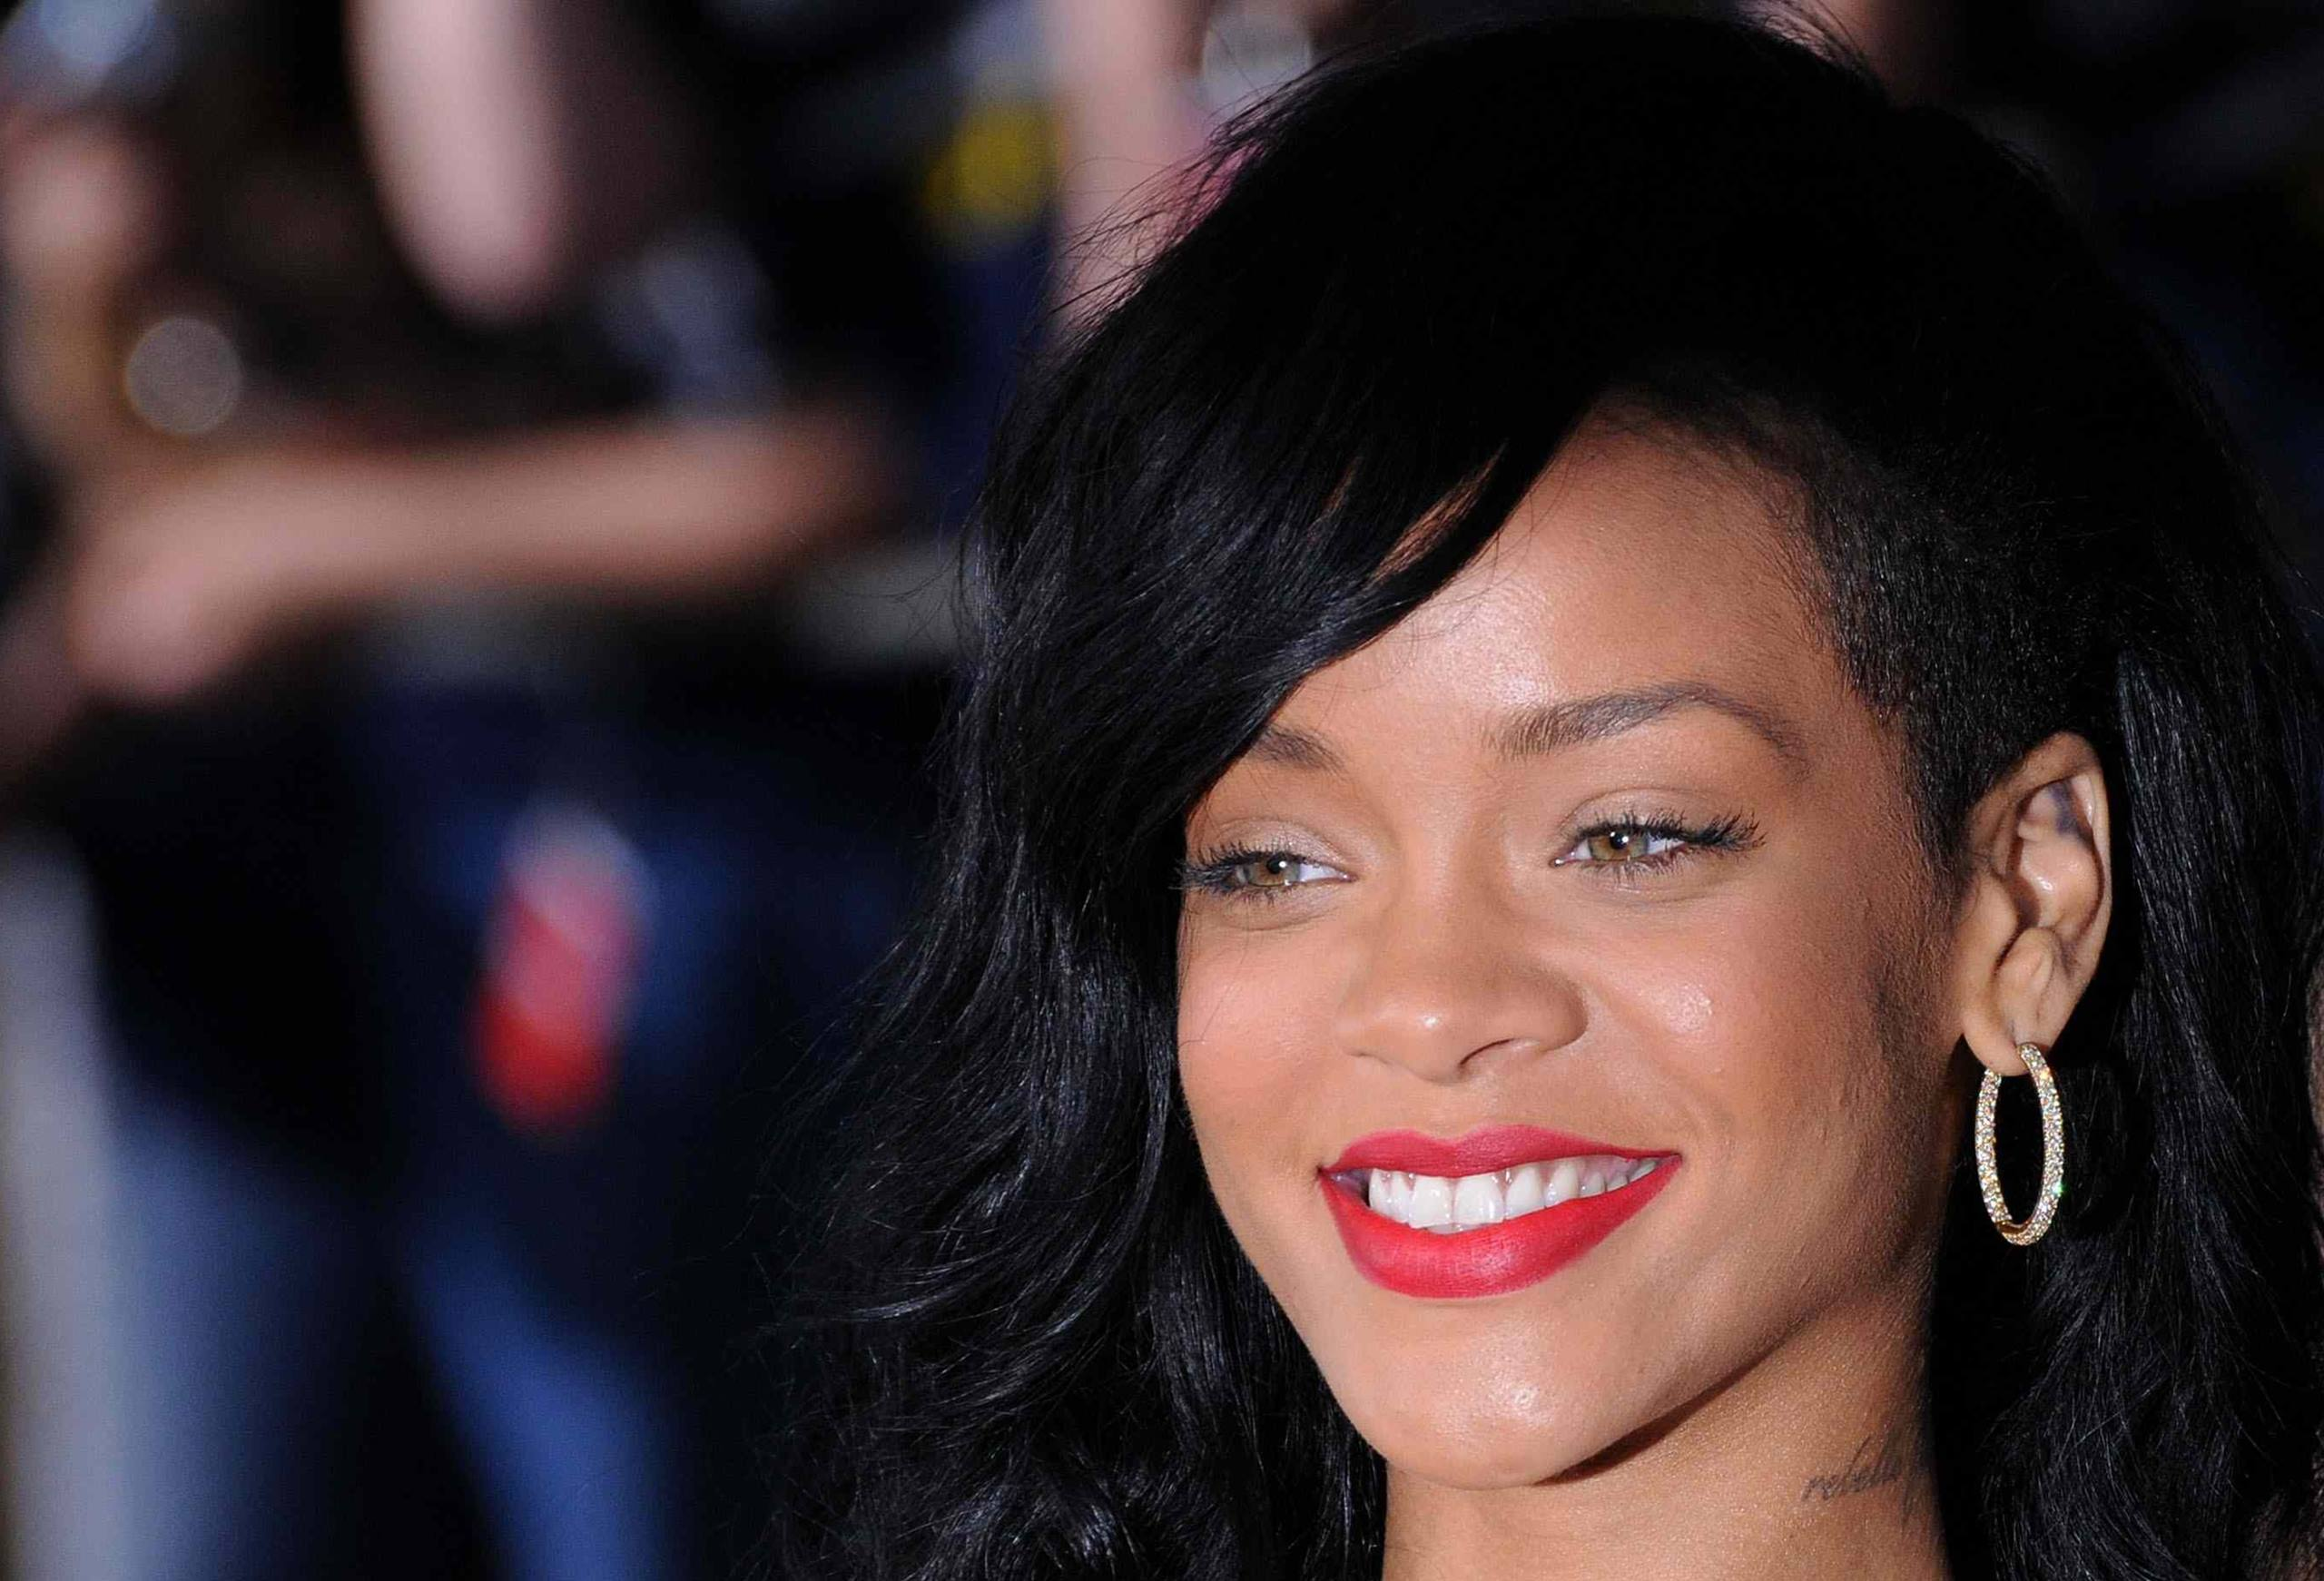 Cute Free Rihanna Picture Download Smiling Red Lip